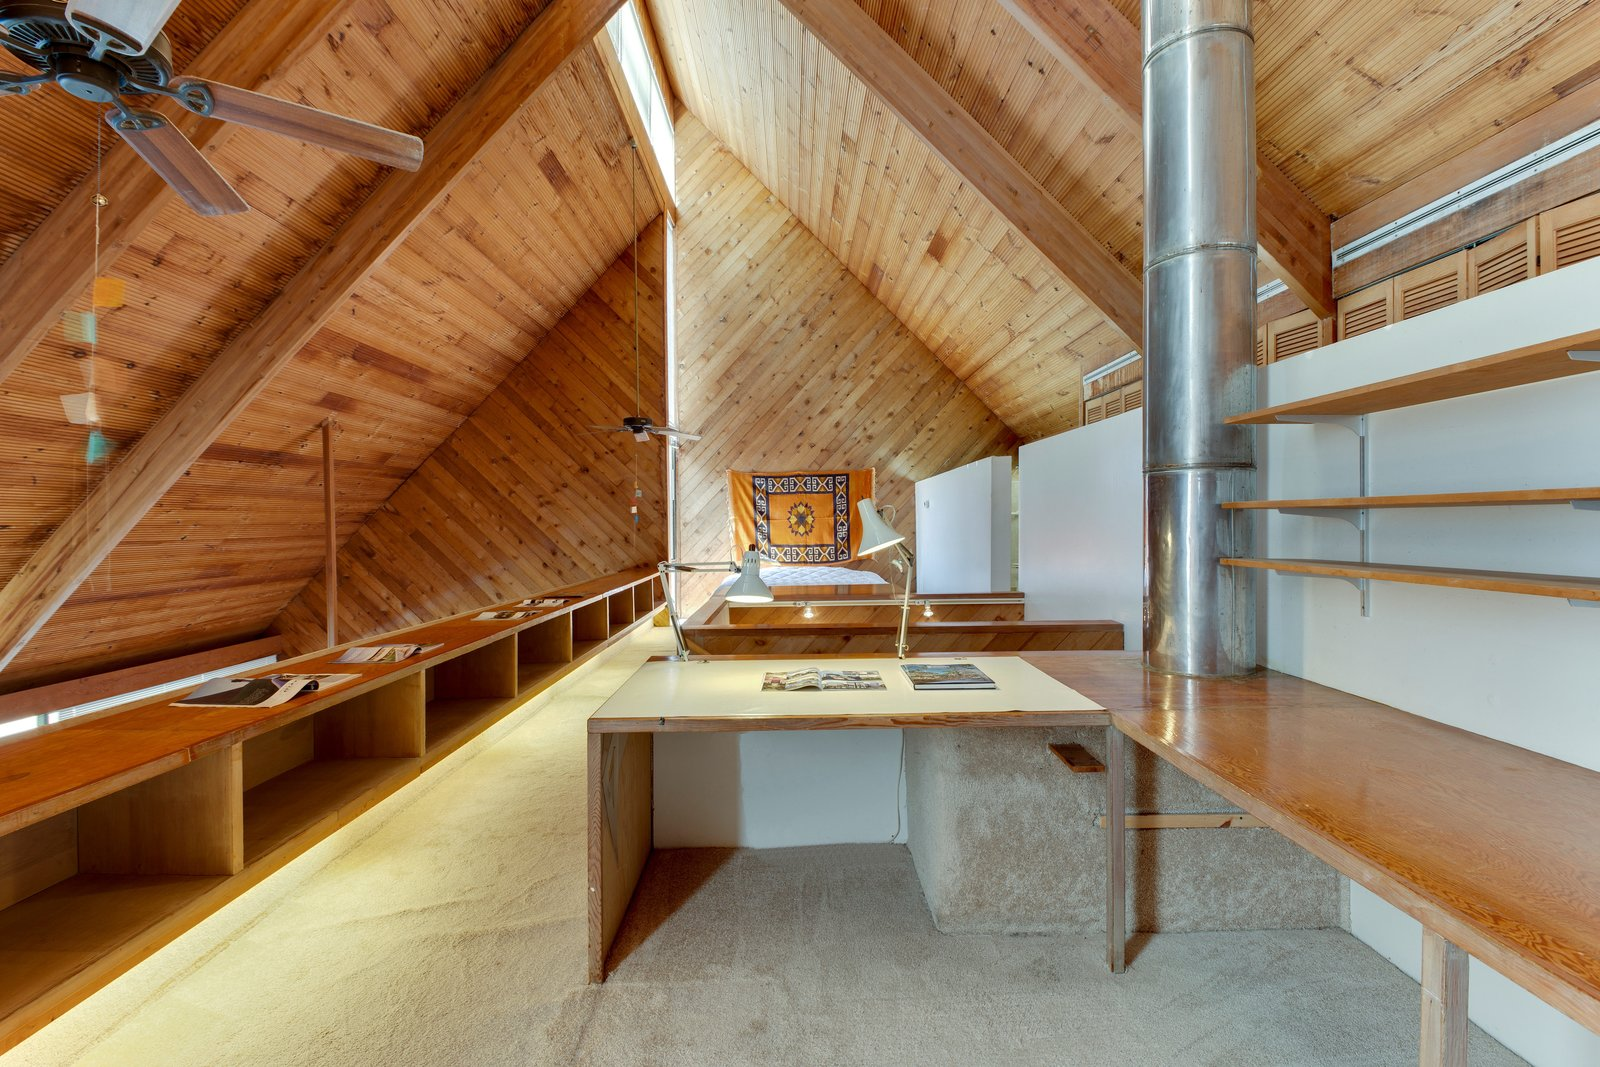 Tagged: Office, Study, Lamps, Desk, and Storage. A Renowned Florida Architect's Geometric Family Home Hits the Market For the First Time - Photo 10 of 13